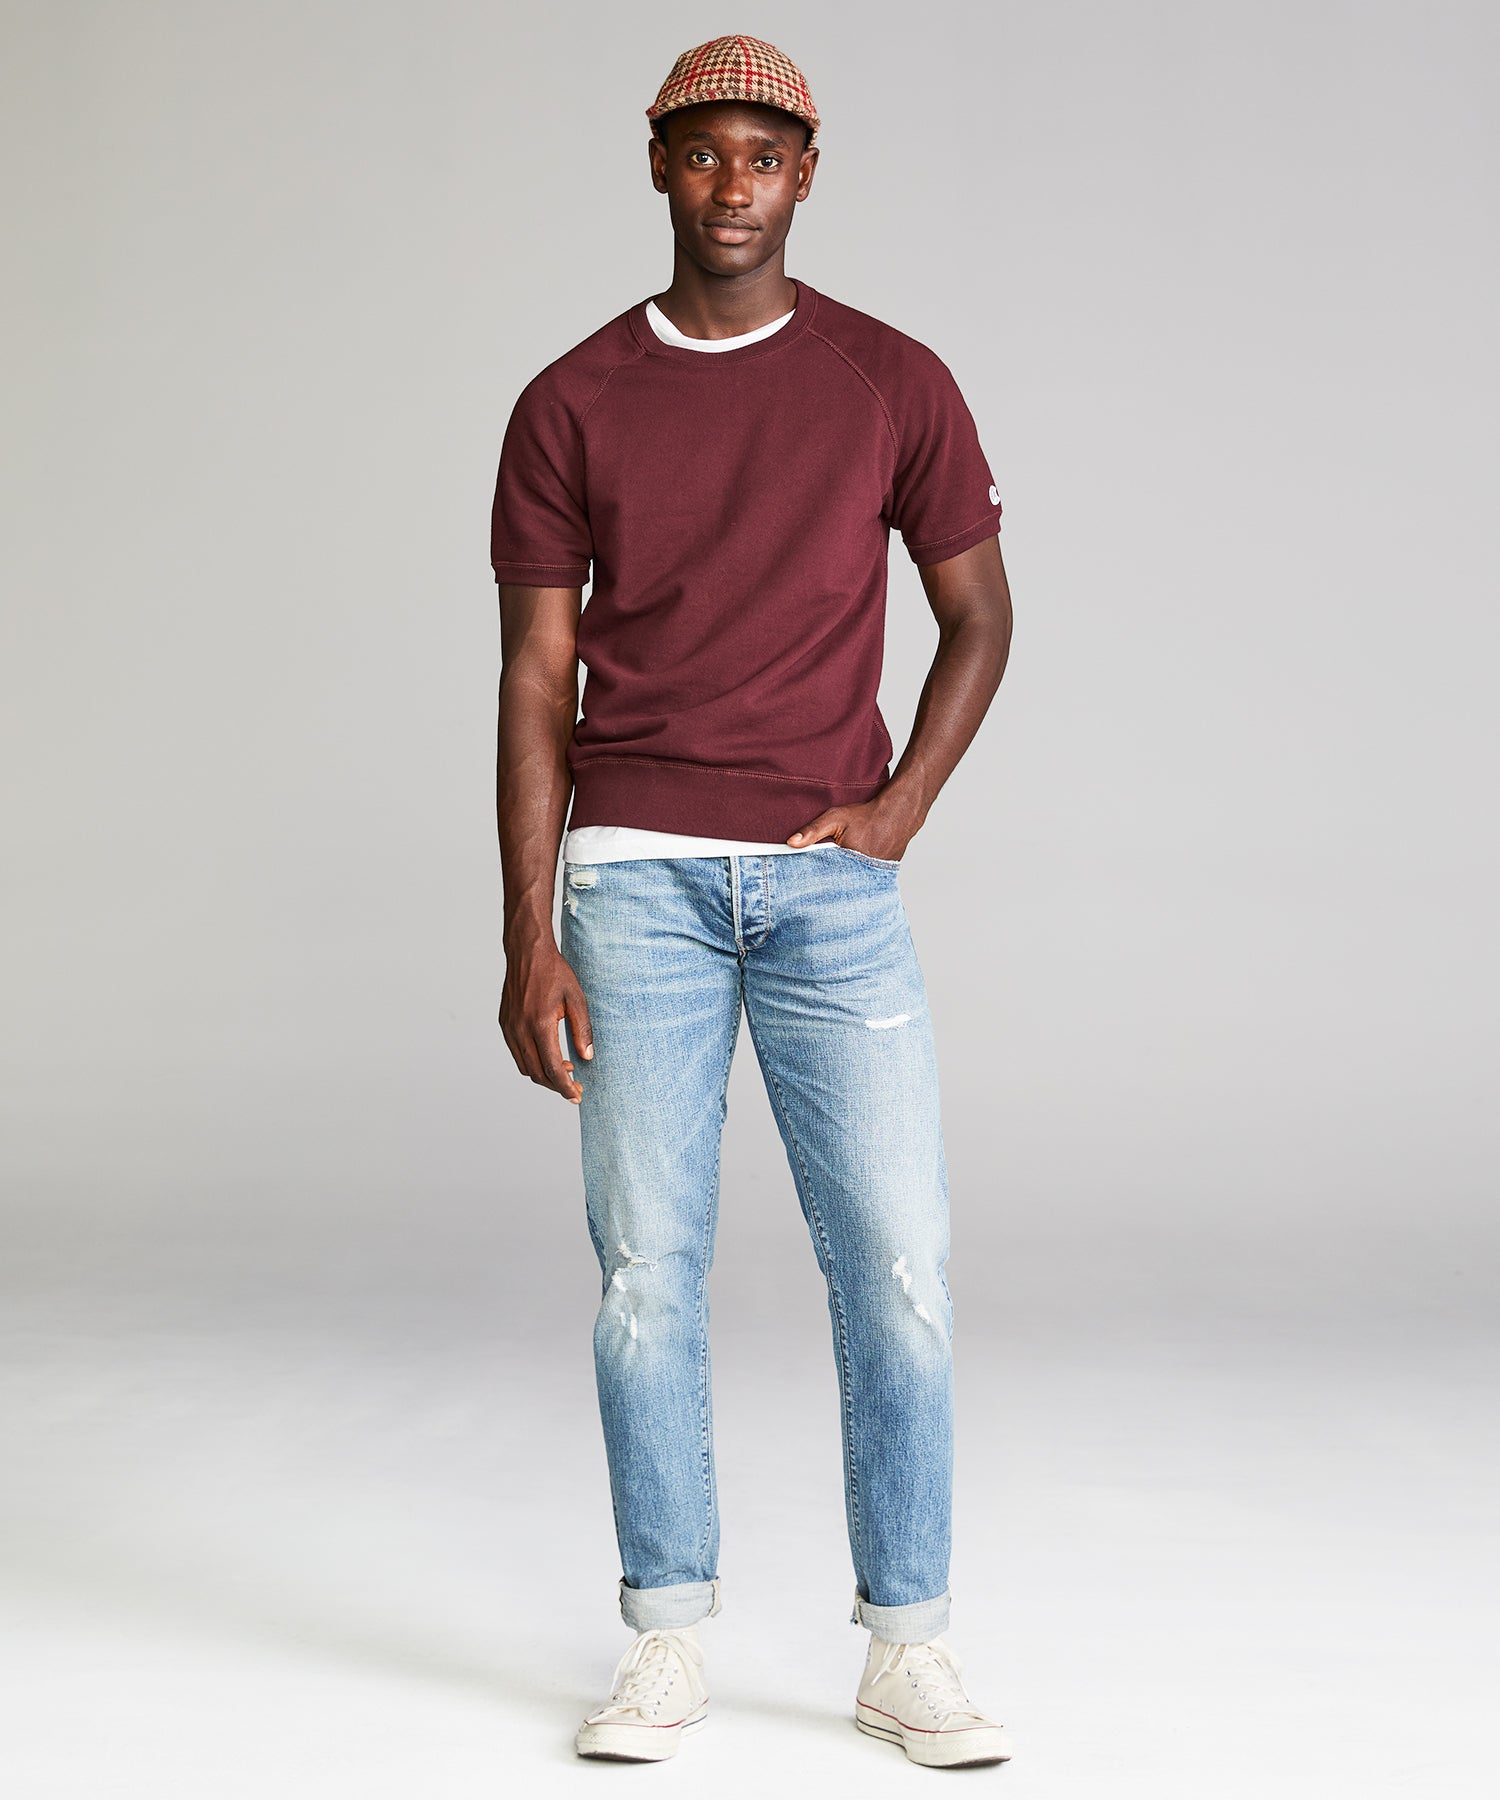 Terry Short Sleeve Sweatshirt in Deep Burgundy